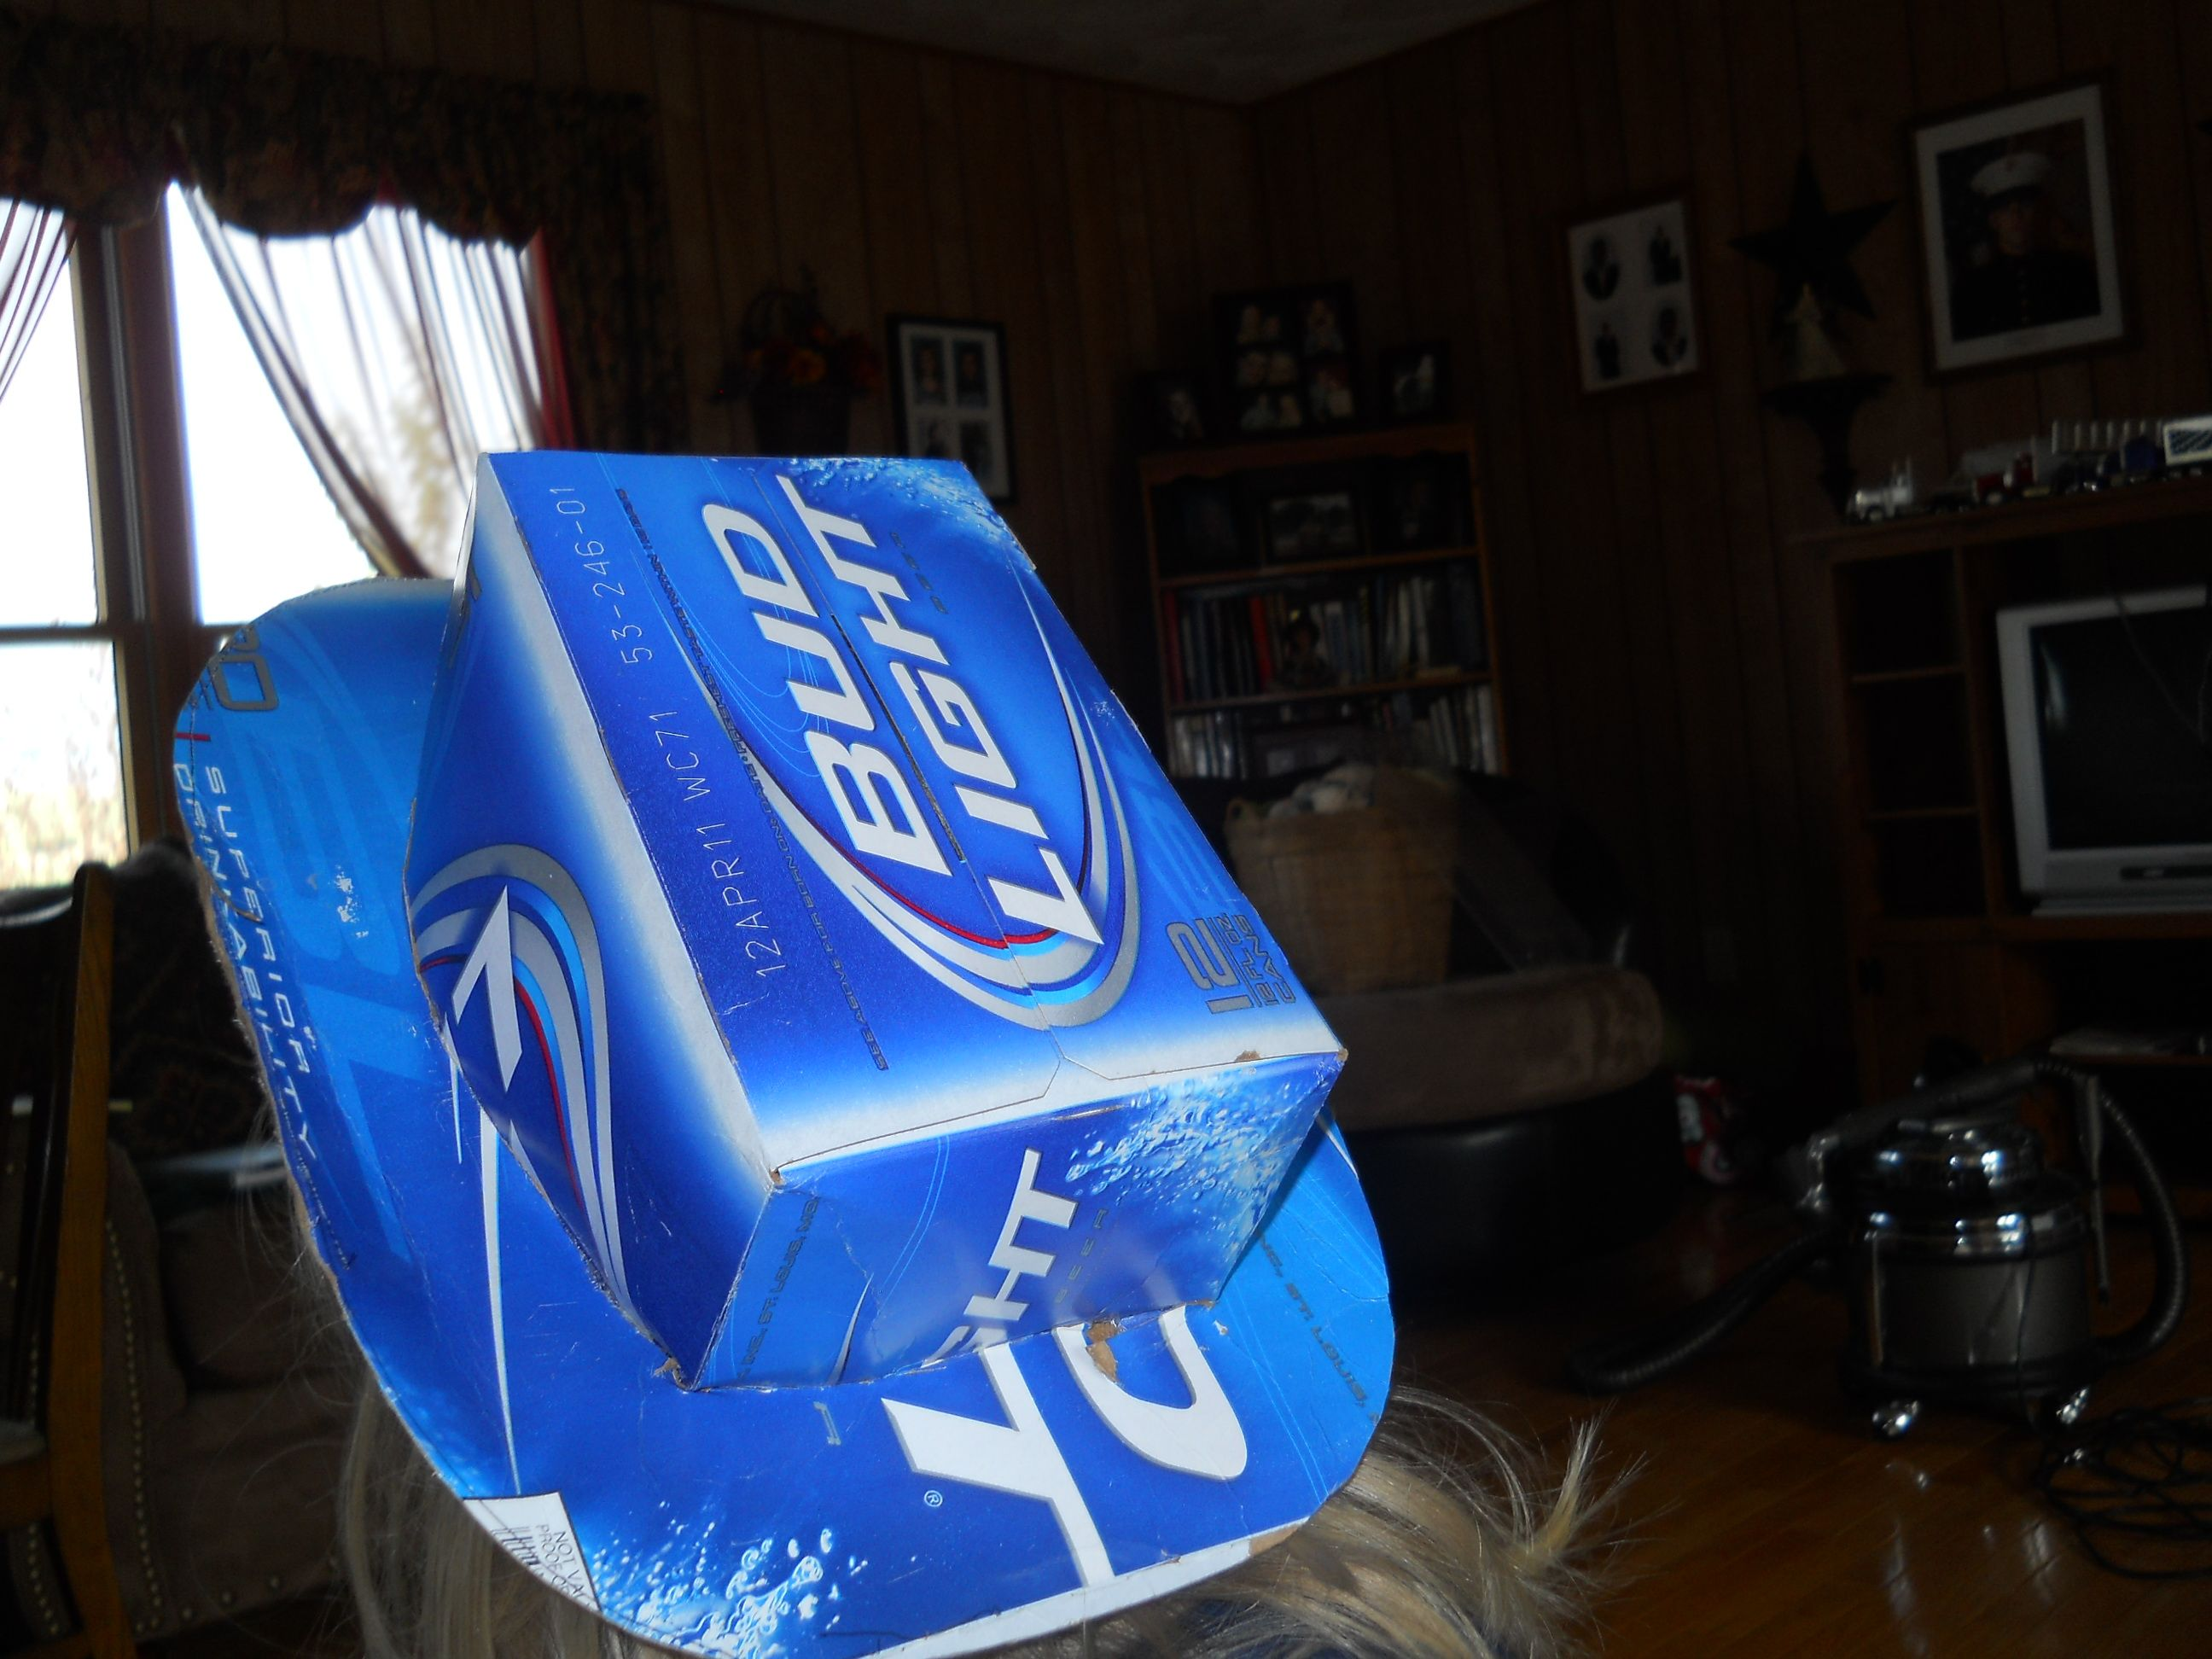 Pin By Krista Hiner On Krista S Craft Corner Beer Box Hat Diy Beer Beer Box